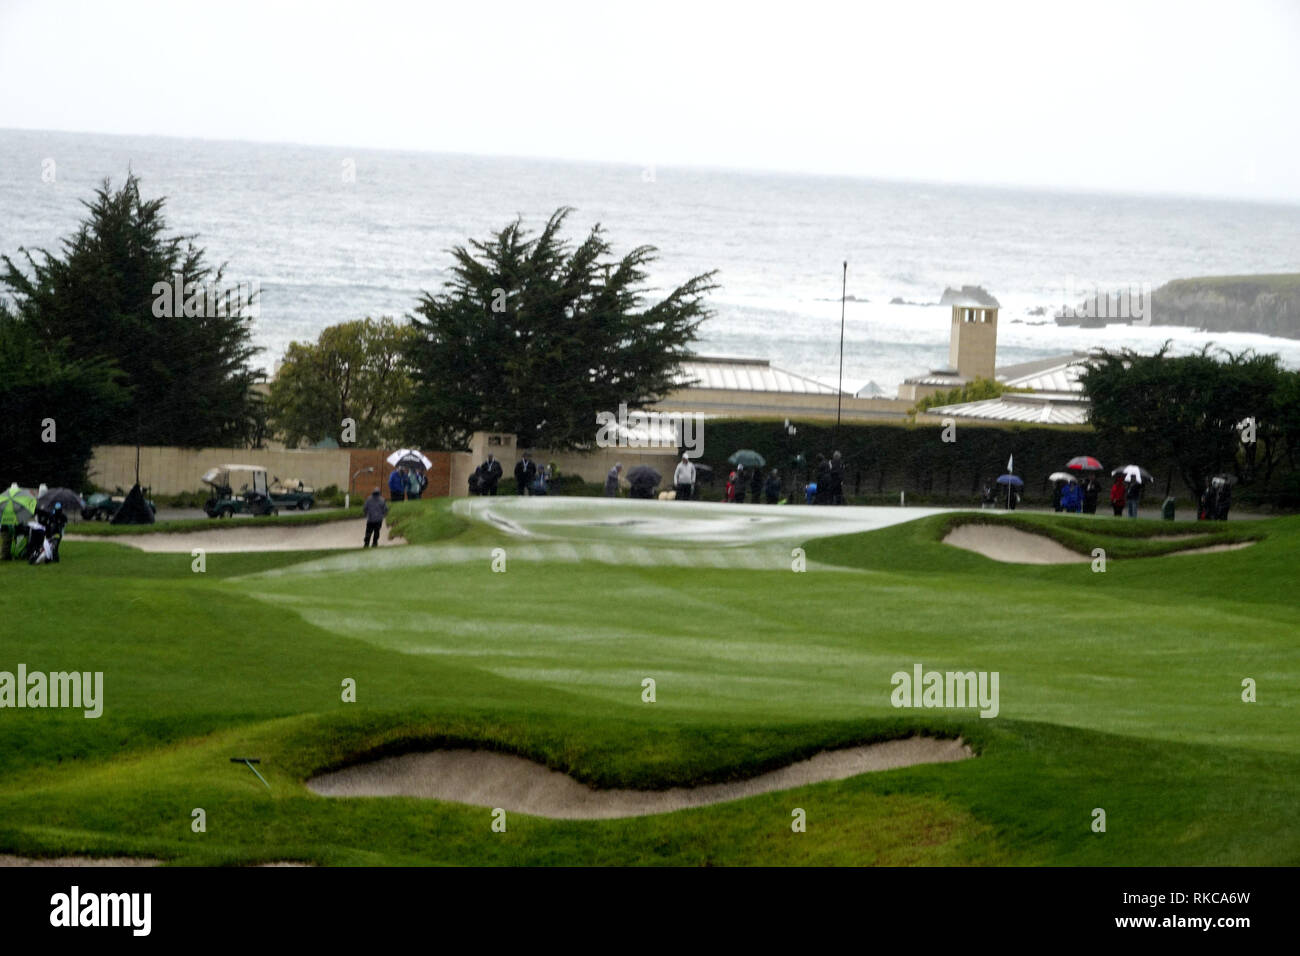 Pebble Beach Golf Links, California, USA. 10th Feb 2019.   Hail stops play during the final round at Pebble Beach Golf Course at  the AT&T Pro-Am at Pebble Beach (here the 3rd hole with hail on the green Credit: Motofoto/Alamy Live News Stock Photo